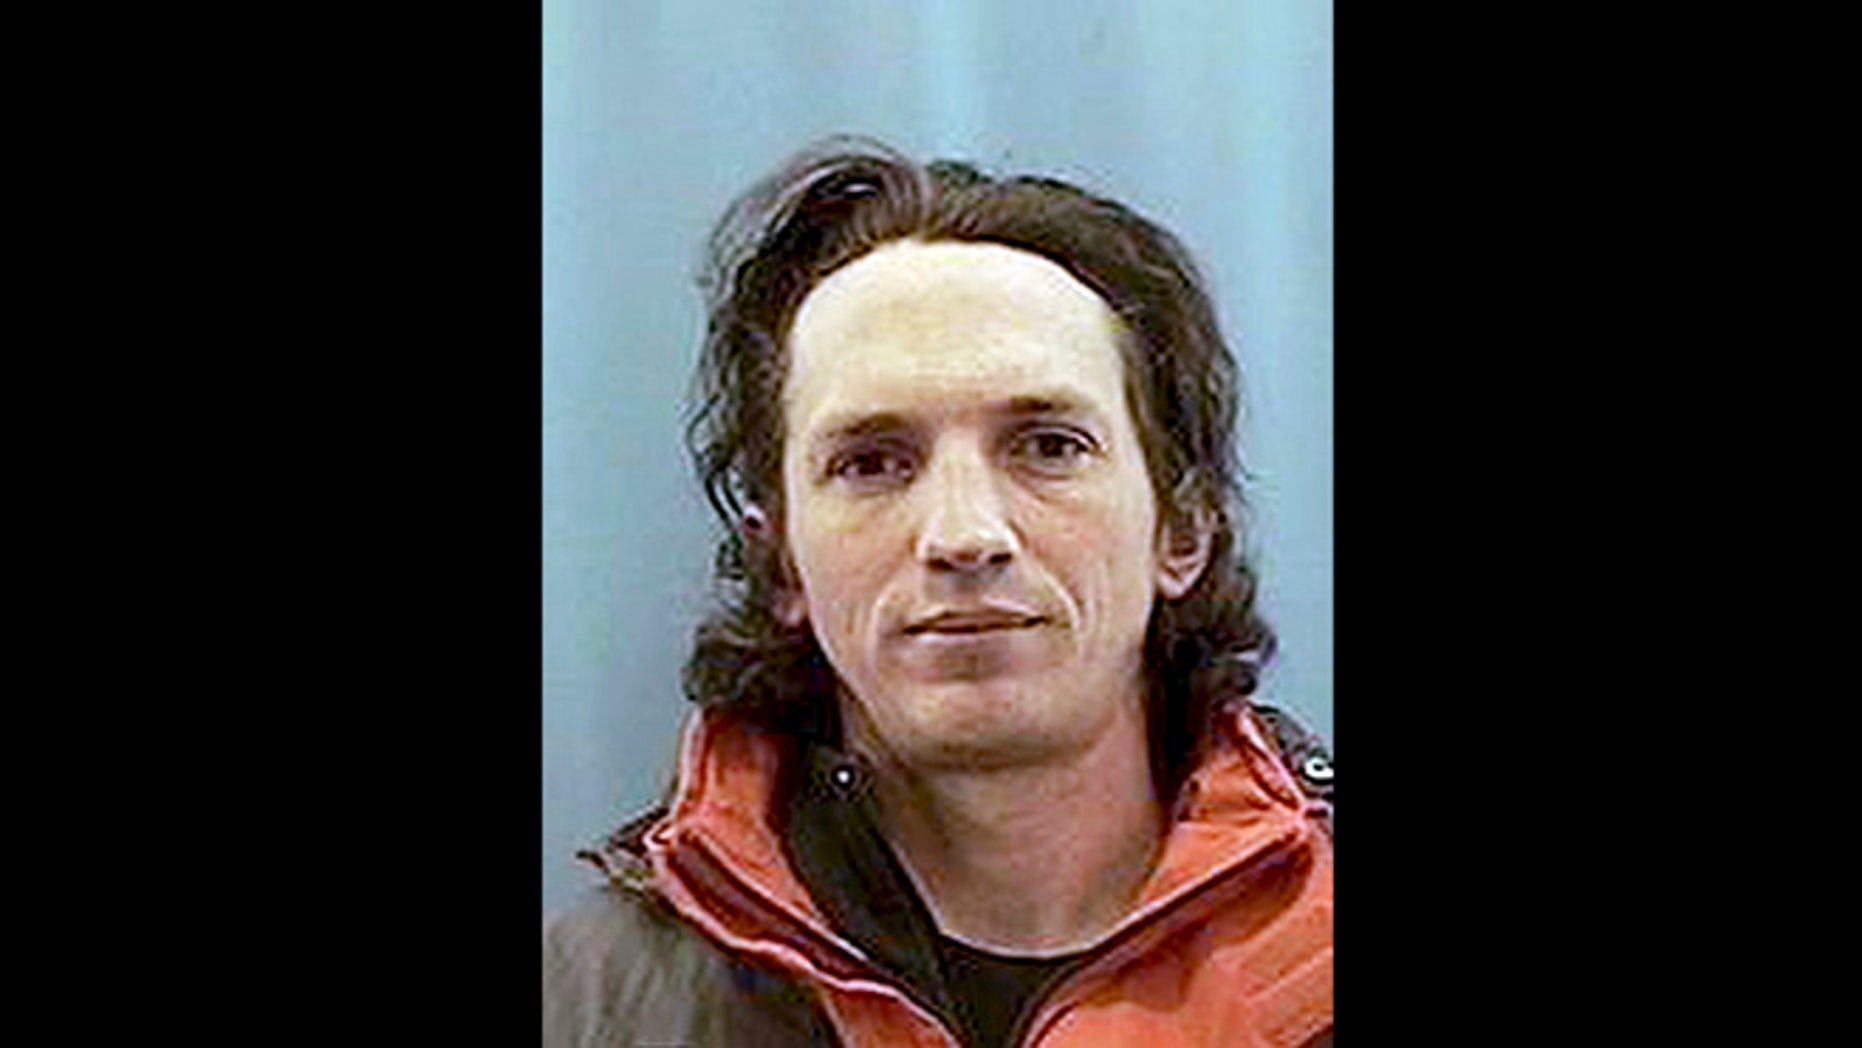 This undated handout photo provided by the Anchorage Police Department shows Israel Keyes. Keyes, charged in the death of an Alaska barista, has killed himself, and authorities say he was linked to at least seven other possible slayings in three other states. Keyes was found dead in his Anchorage jail cell Sunday, Dec. 2, 2012. Officials say it was a suicide.